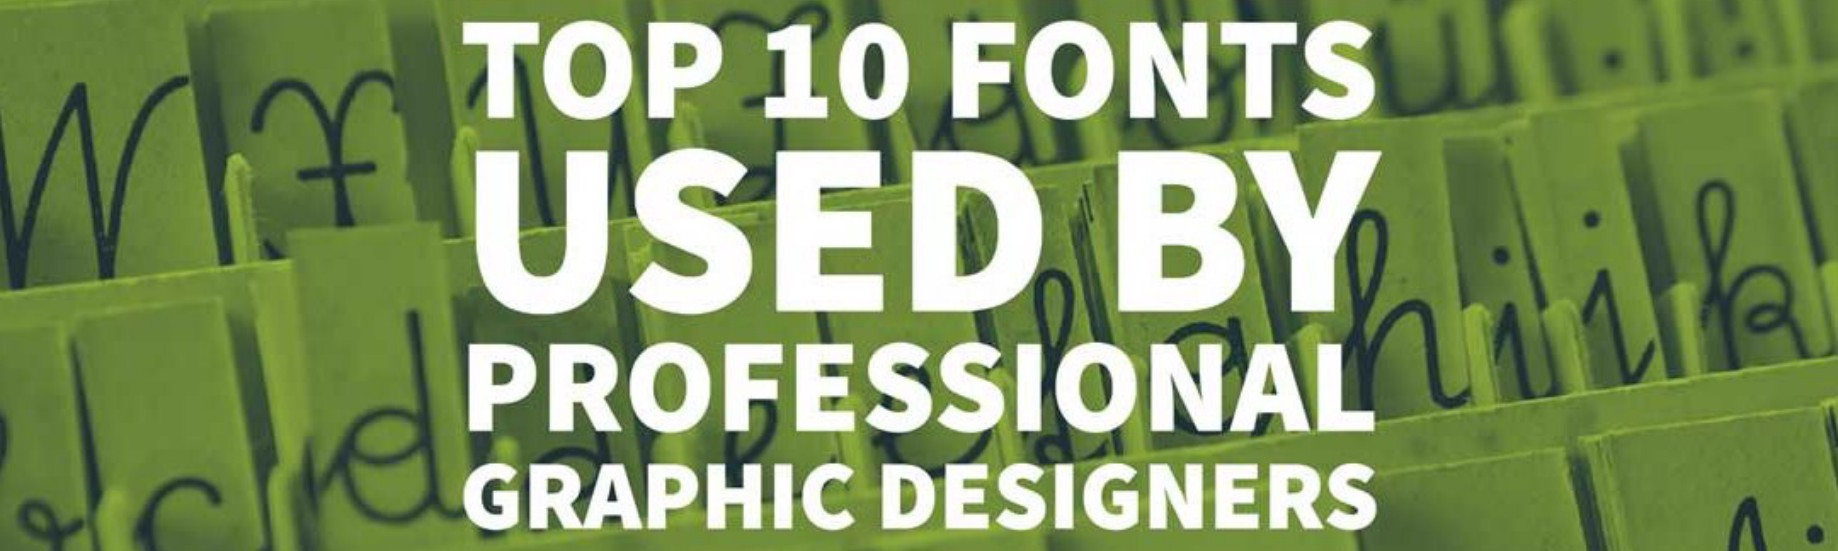 Top 10 Fonts Used By Professional Graphic Designers